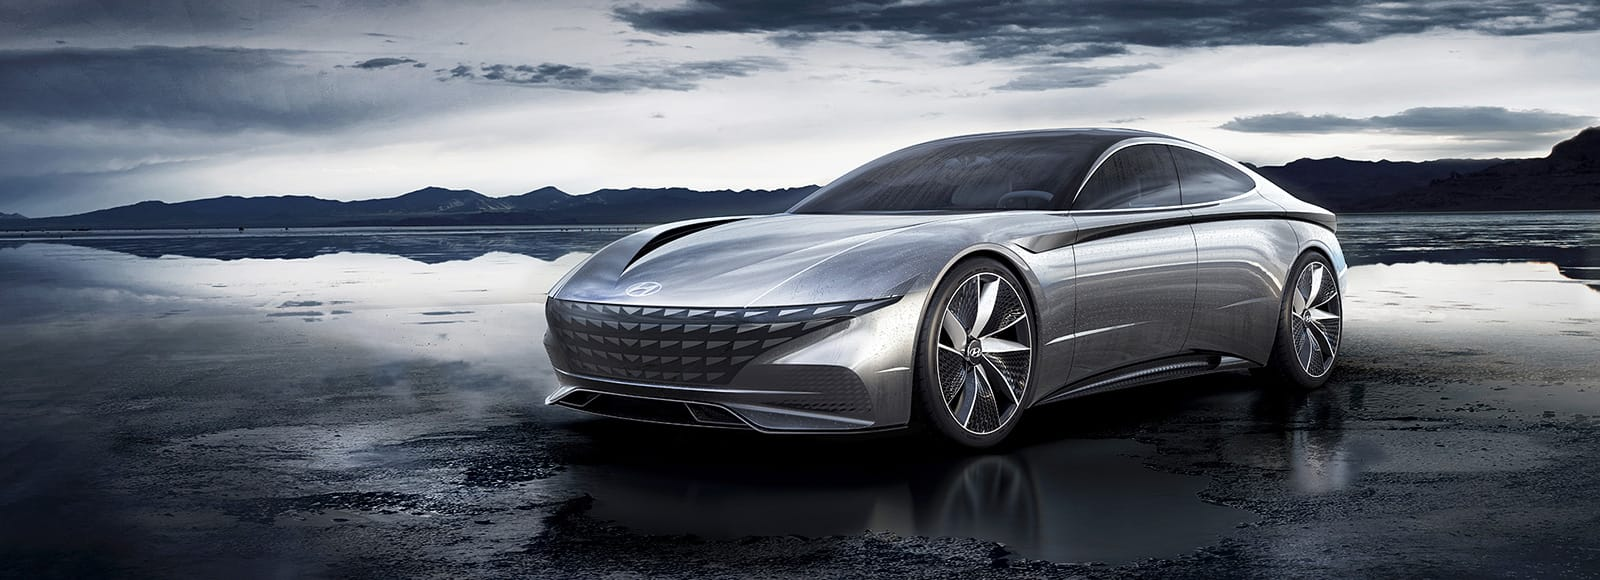 Concept car direction